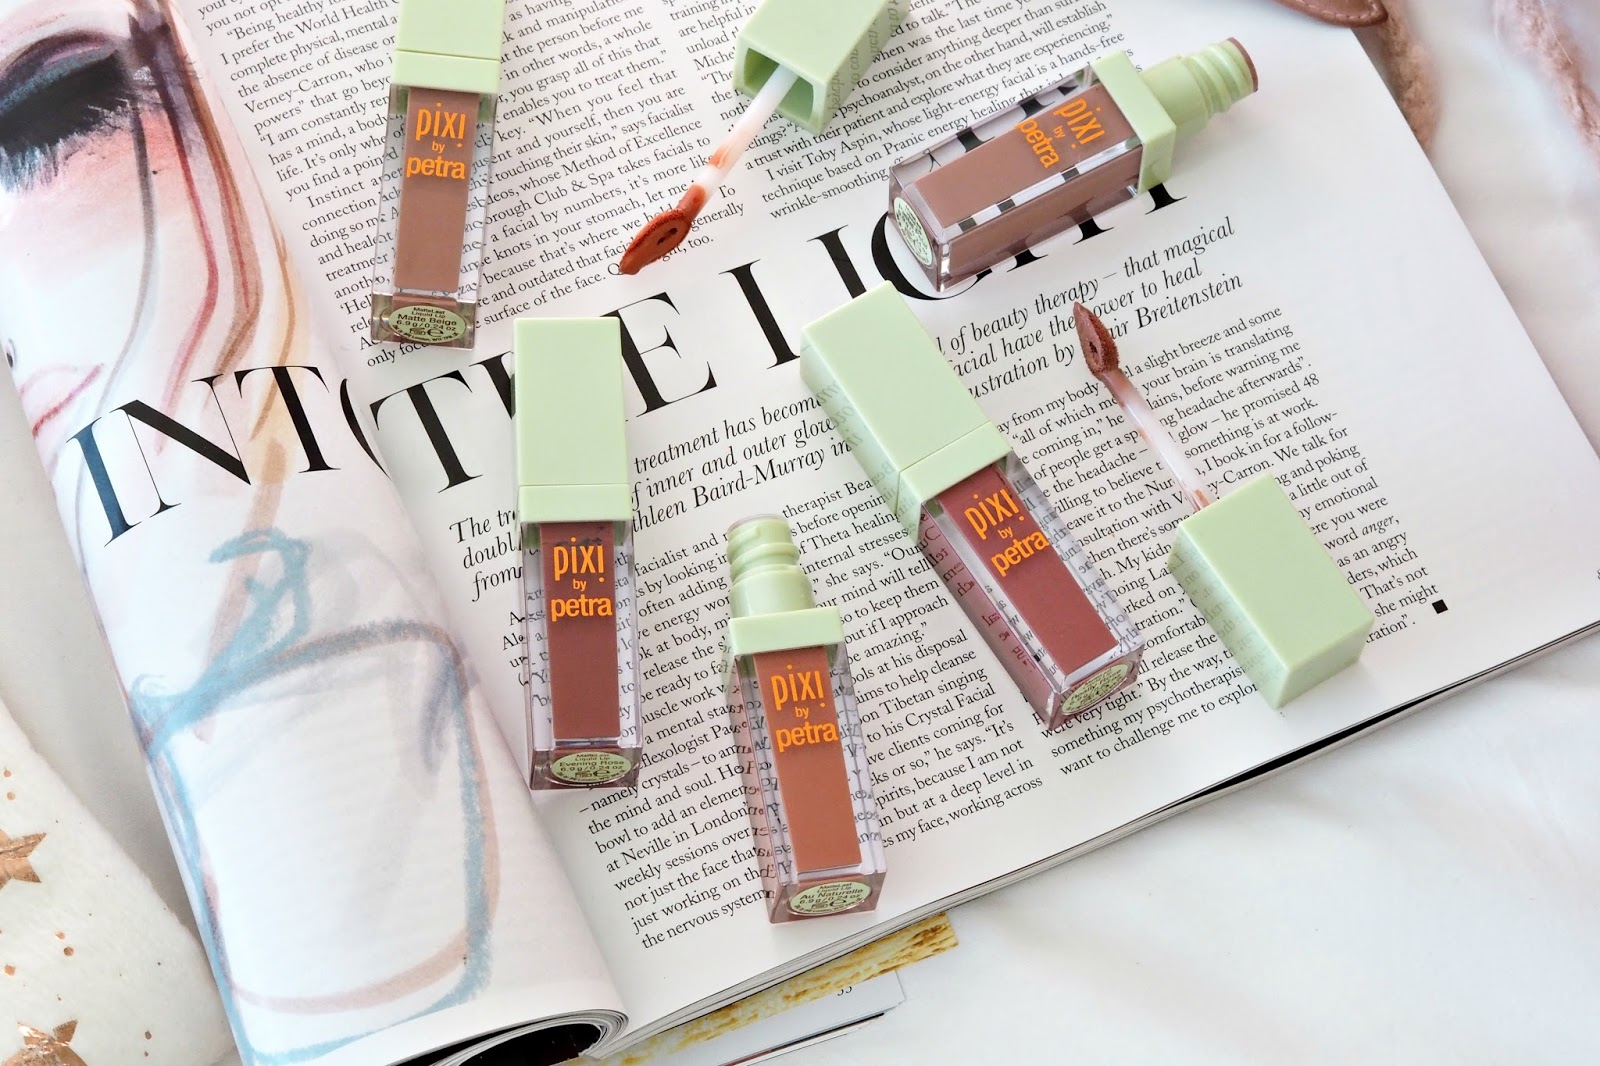 PIXI MatteLast Liquid Lipstick Review and swatches